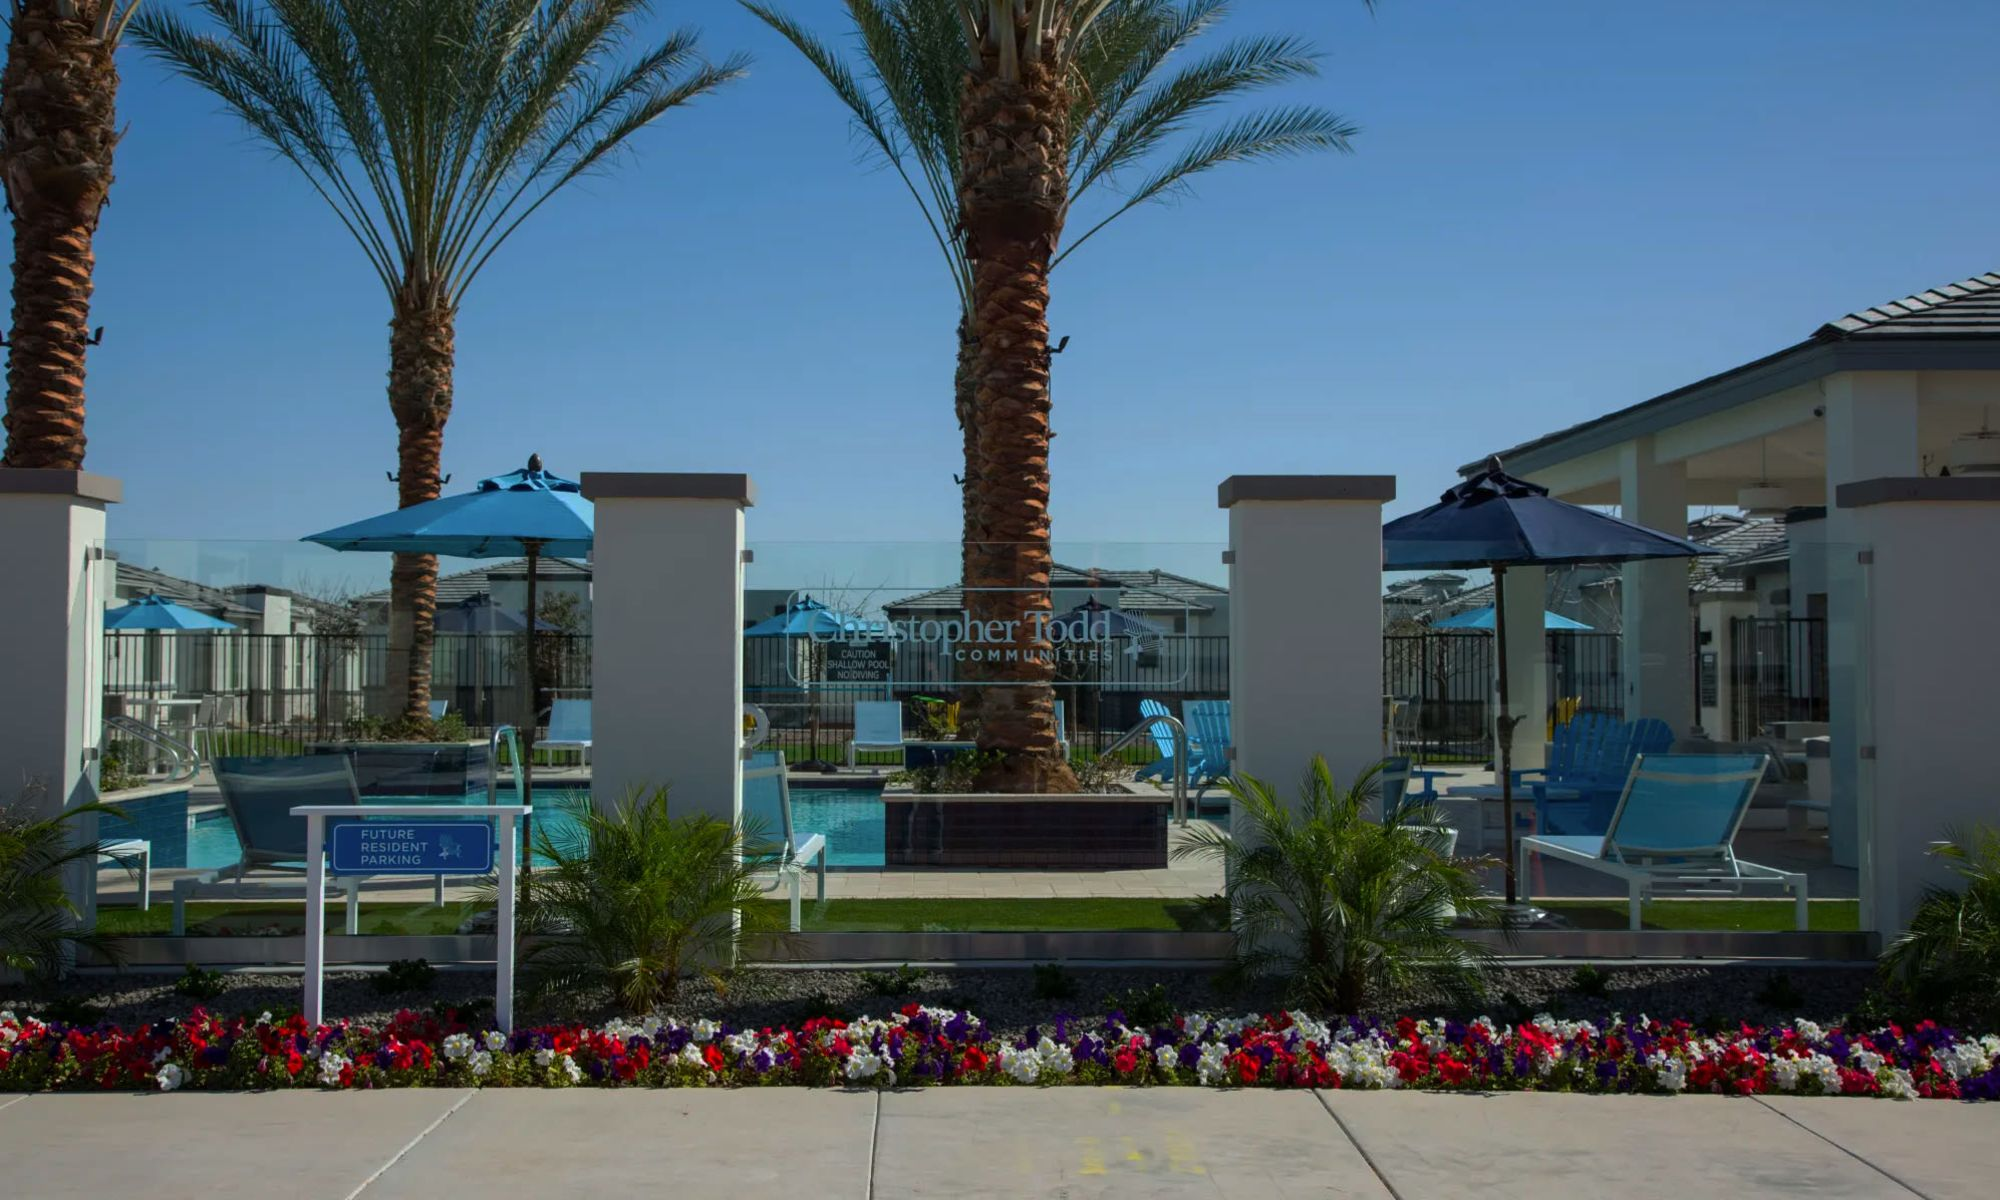 Apartments in Tolleson, Arizona at Christopher Todd Communities at Country Place